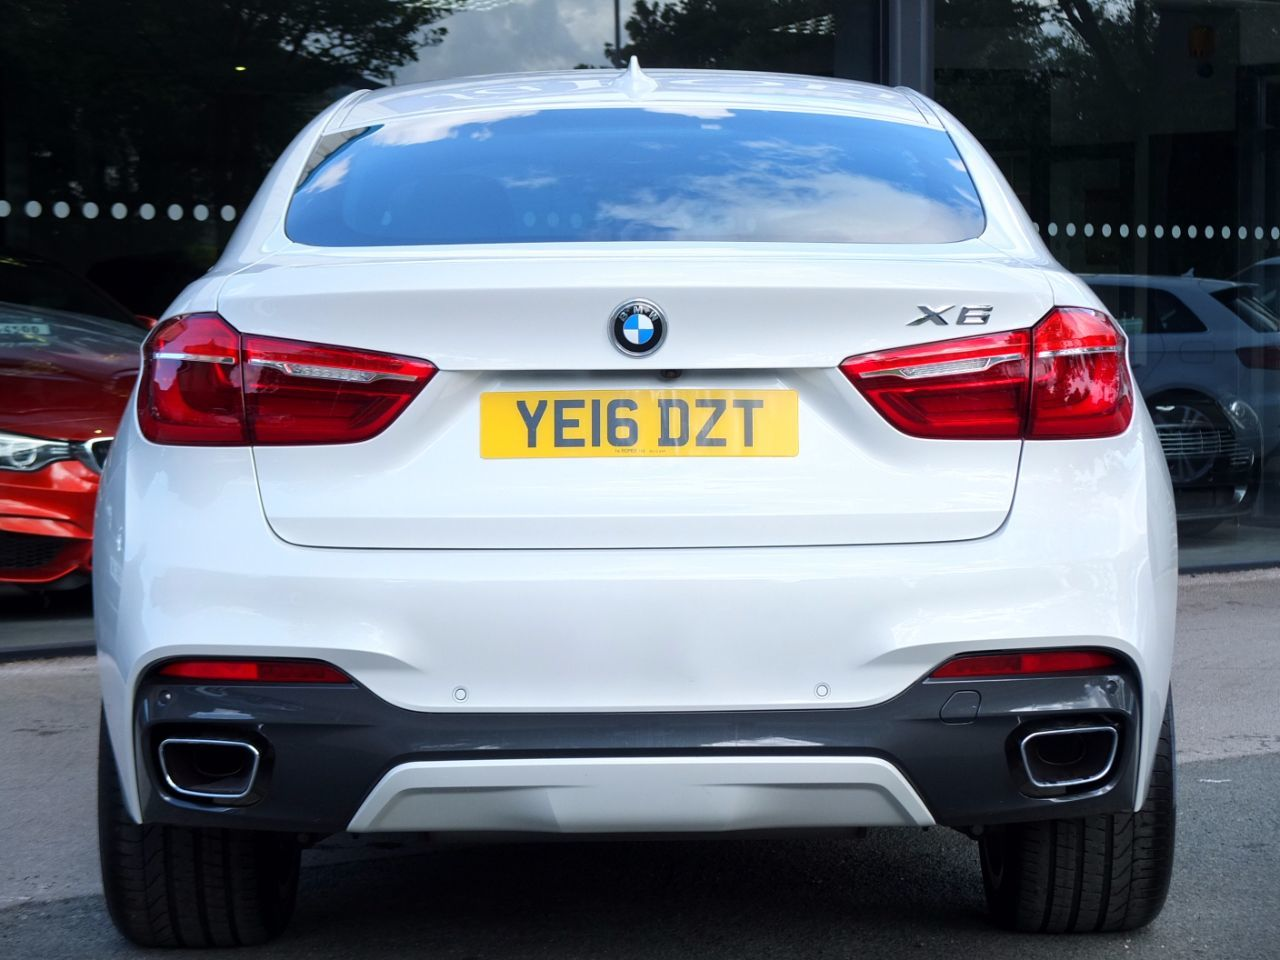 BMW X6 3.0 xDrive30d M Sport Auto Coupe Diesel Mineral White Metallic